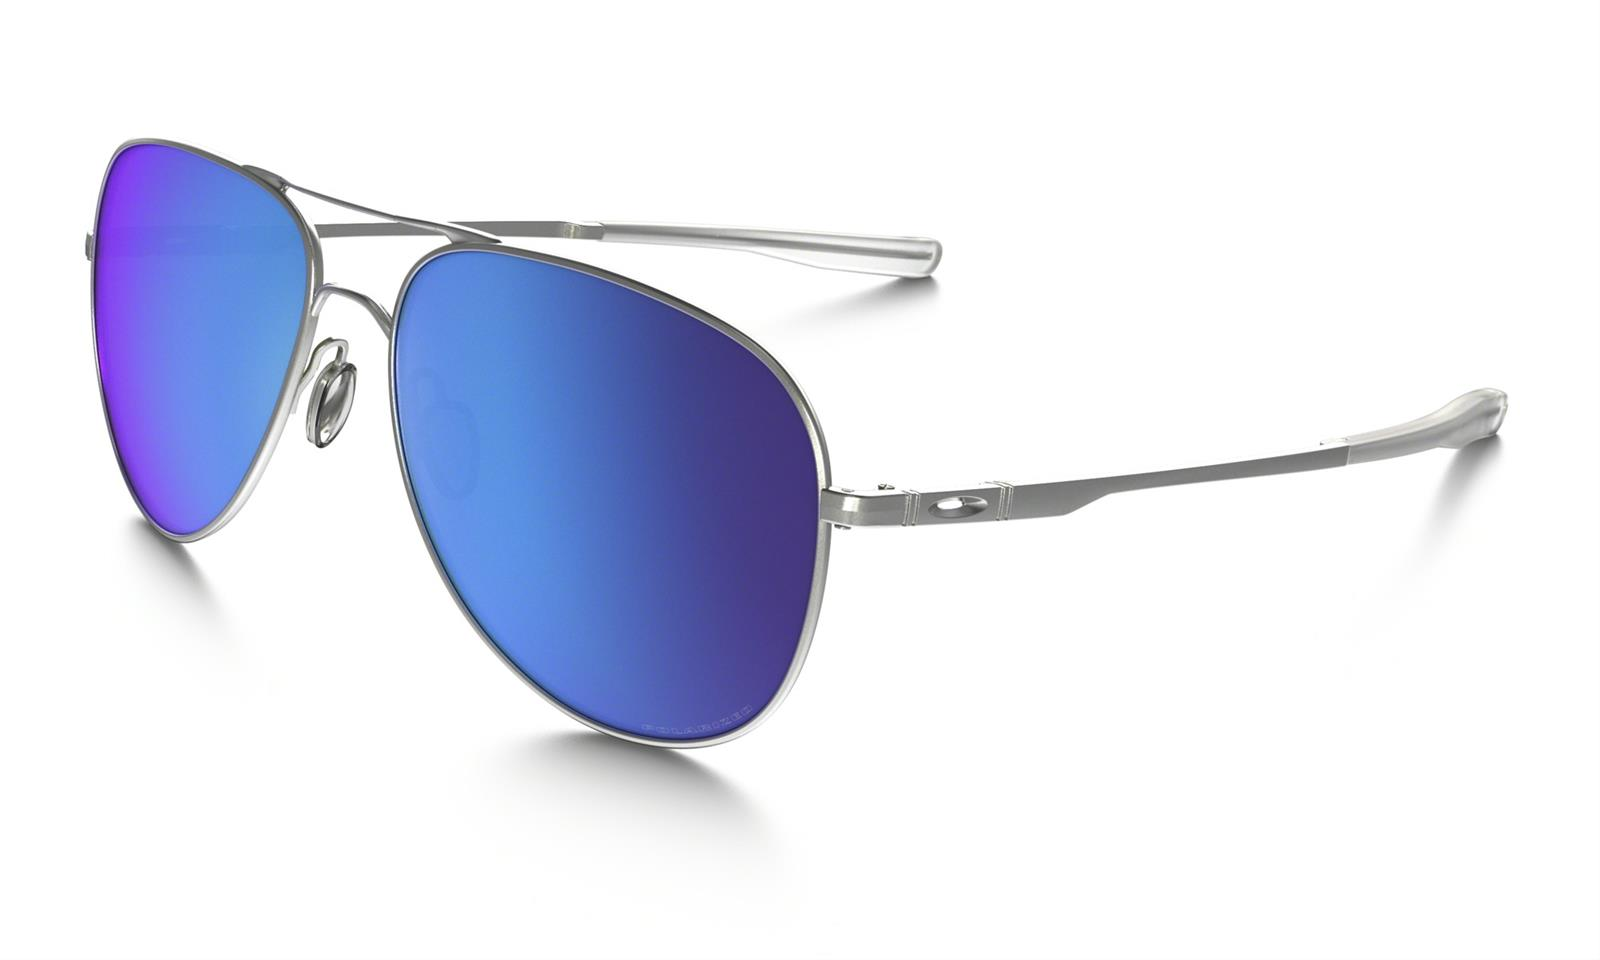 e1a3c2a823d Oakley Elmont Sunglasses OO4119-0758 - Free Shipping on Orders Over  99 at  Summit Racing